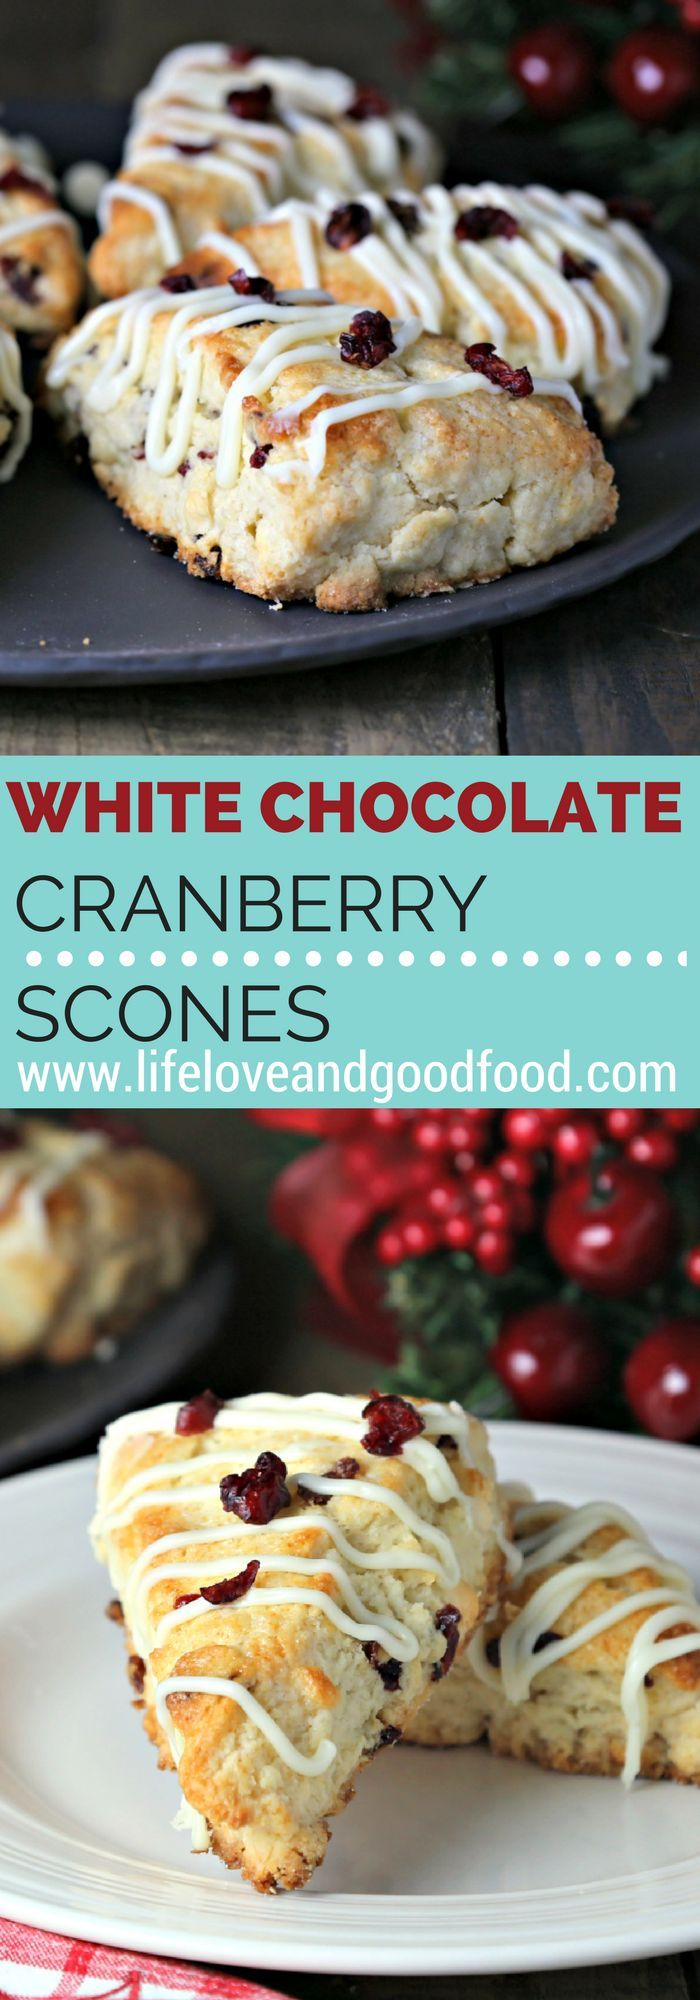 White Chocolate Cranberry Scones | Life, Love, and Good Food @ImmaculateBakes